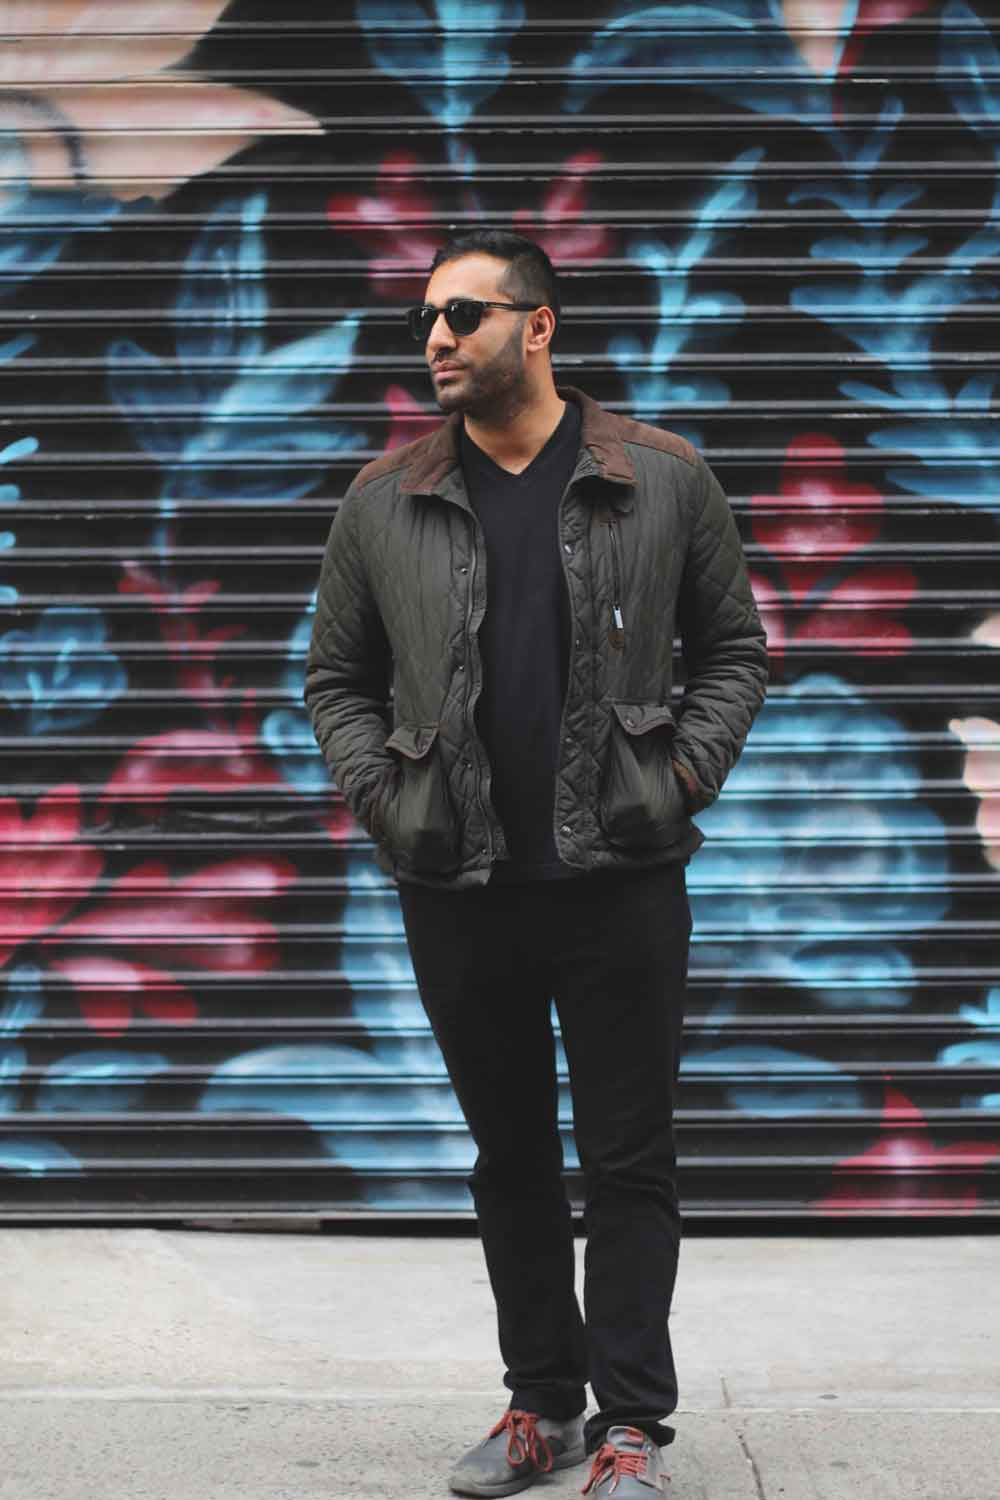 Sunglasses:  Warby Parker  // V-Neck + Jeans:  Uniqlo  // Jacket: Zara // Shoes:  Vico